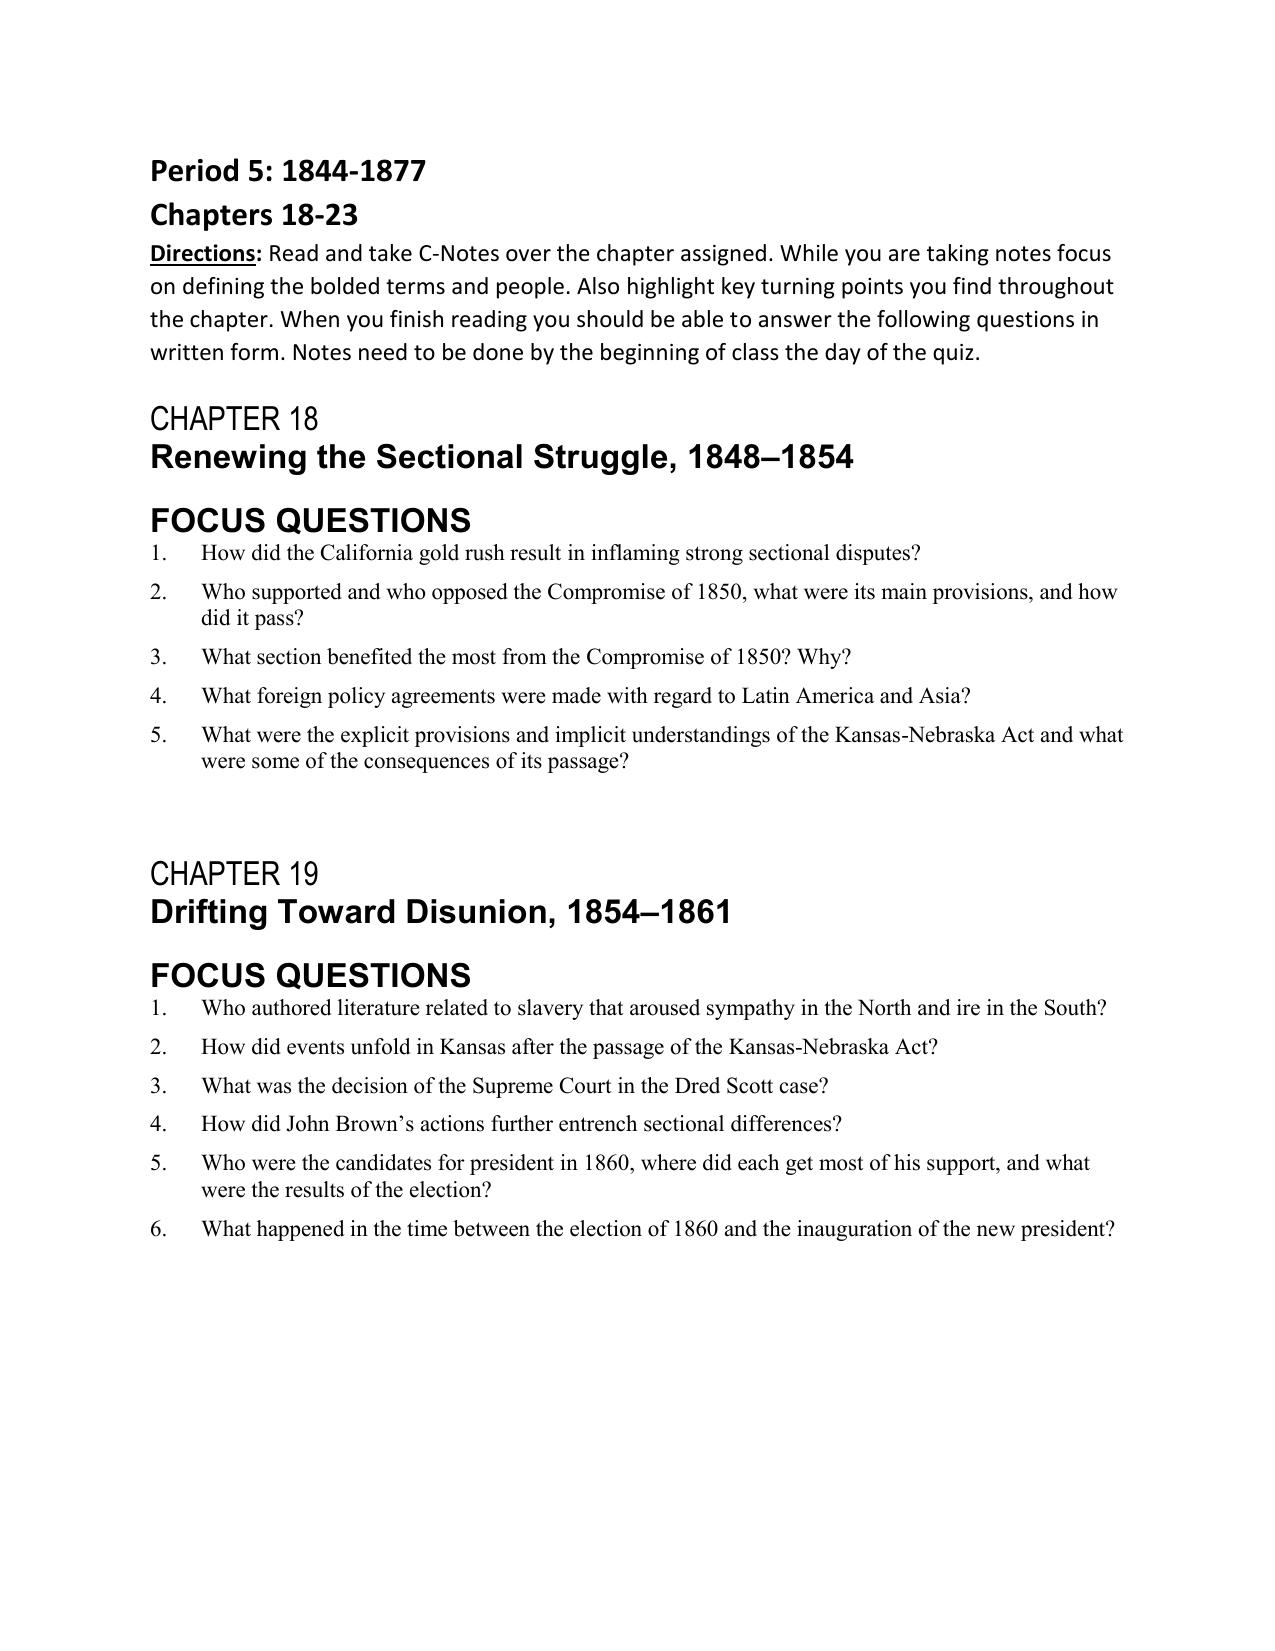 Period 5: 1844-1877 Chapters 18-23 CHAPTER 18 Renewing the